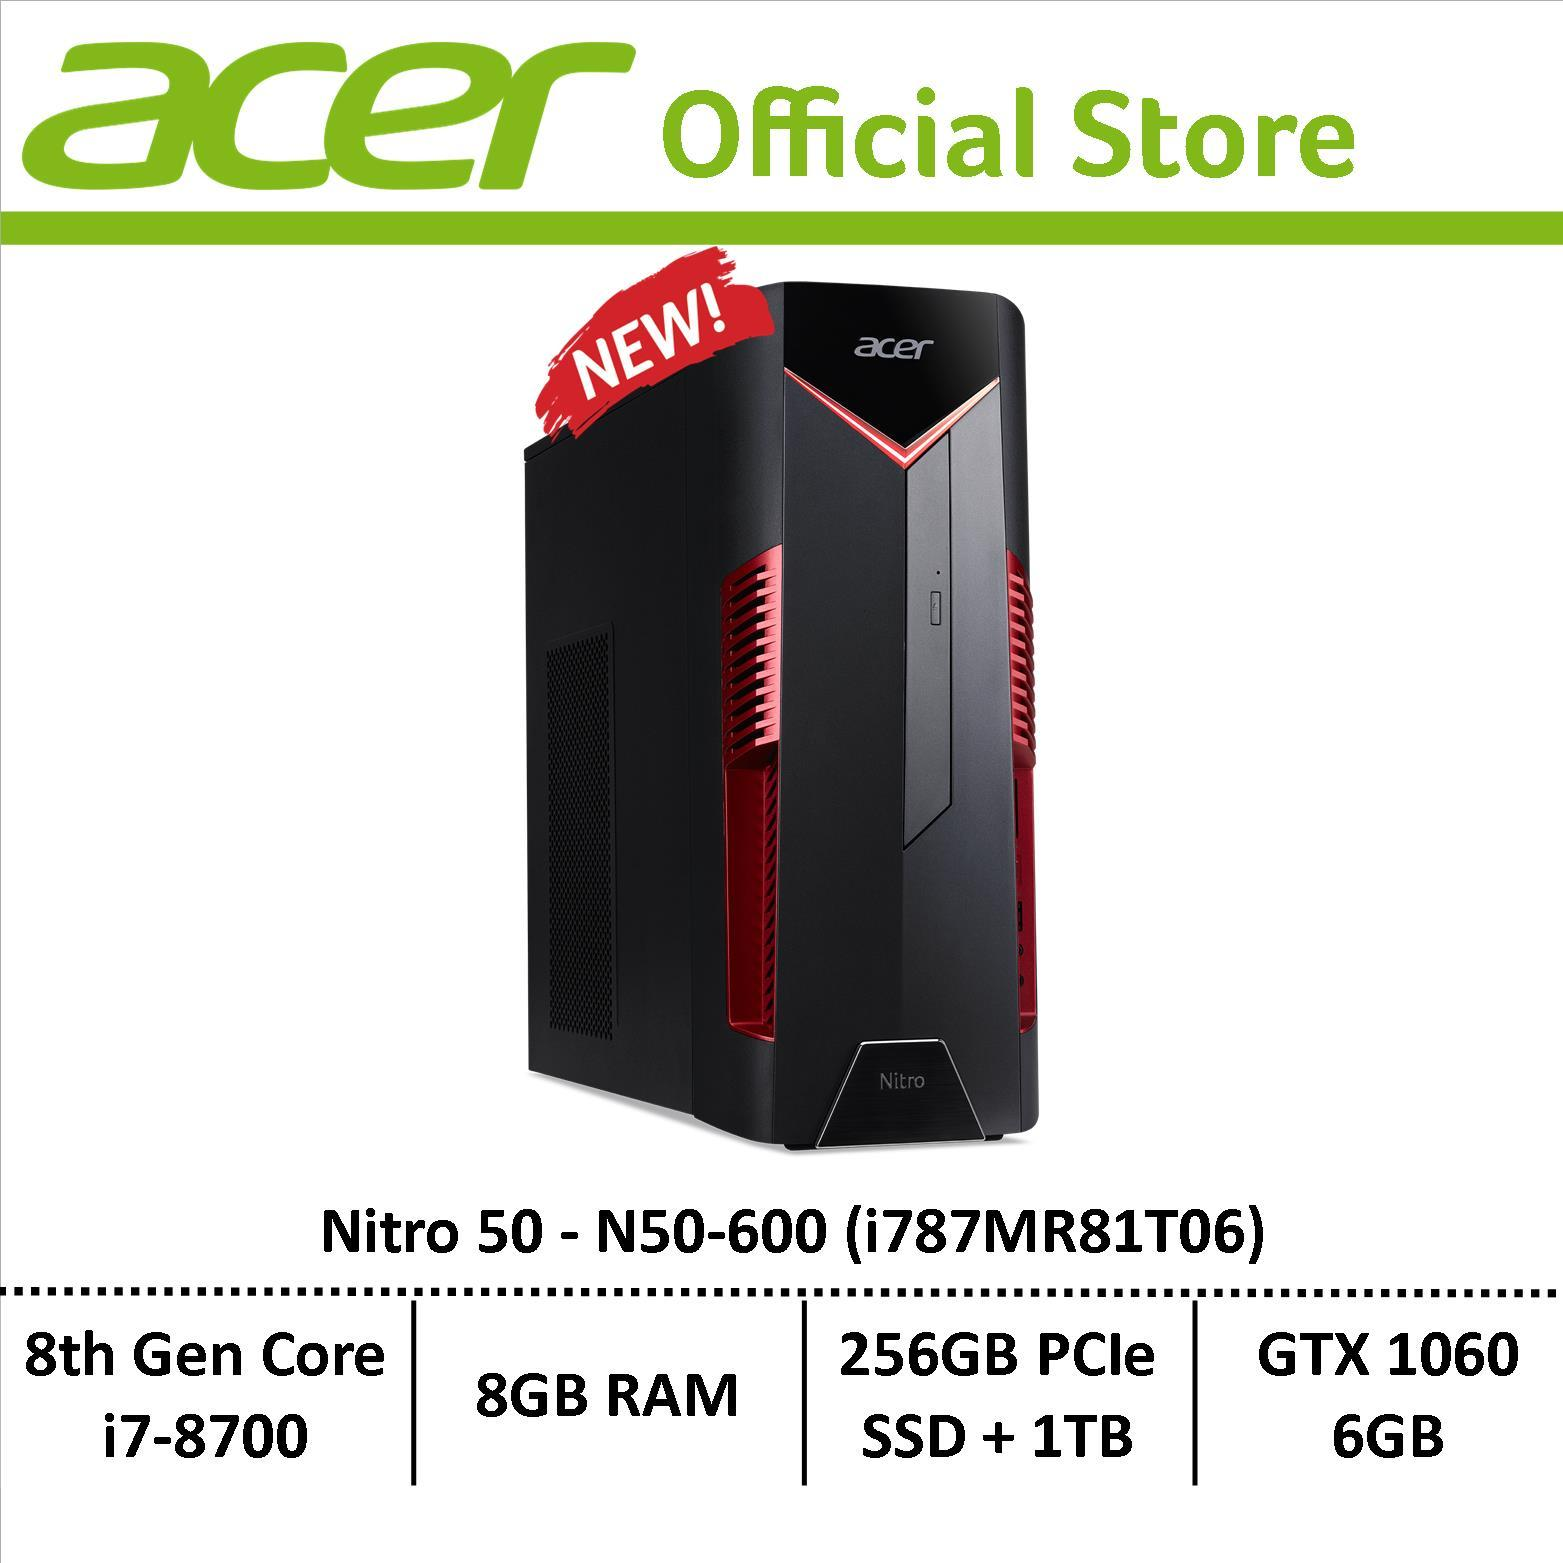 Acer Nitro 50 N50-600 (i787mr81t06) Gaming Desktop By Acer Official Store.